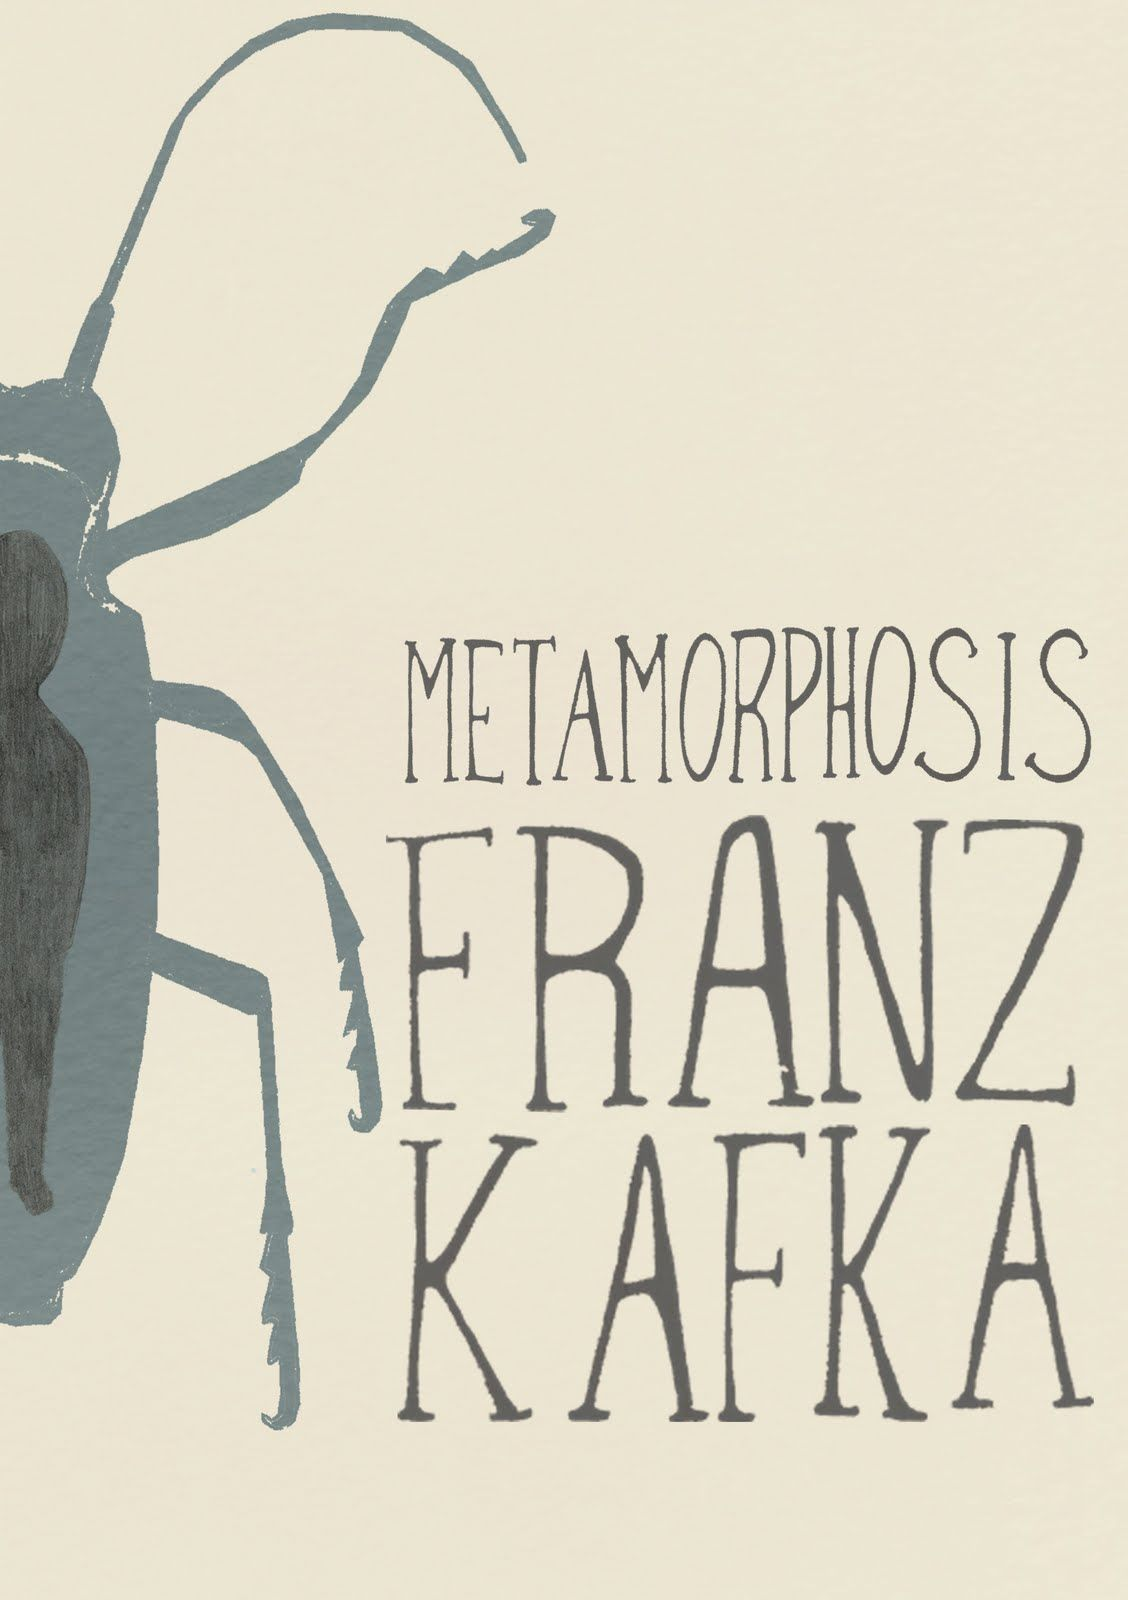 philosophical context in franz kafkas metamorphosis The metamorphosis by franz kafka uses gregor samsa's struggle against existentialist principles, as well as the consequences surrounding gregor's actions against the existentialist principles to exhibit a chiefly existentialist theme.